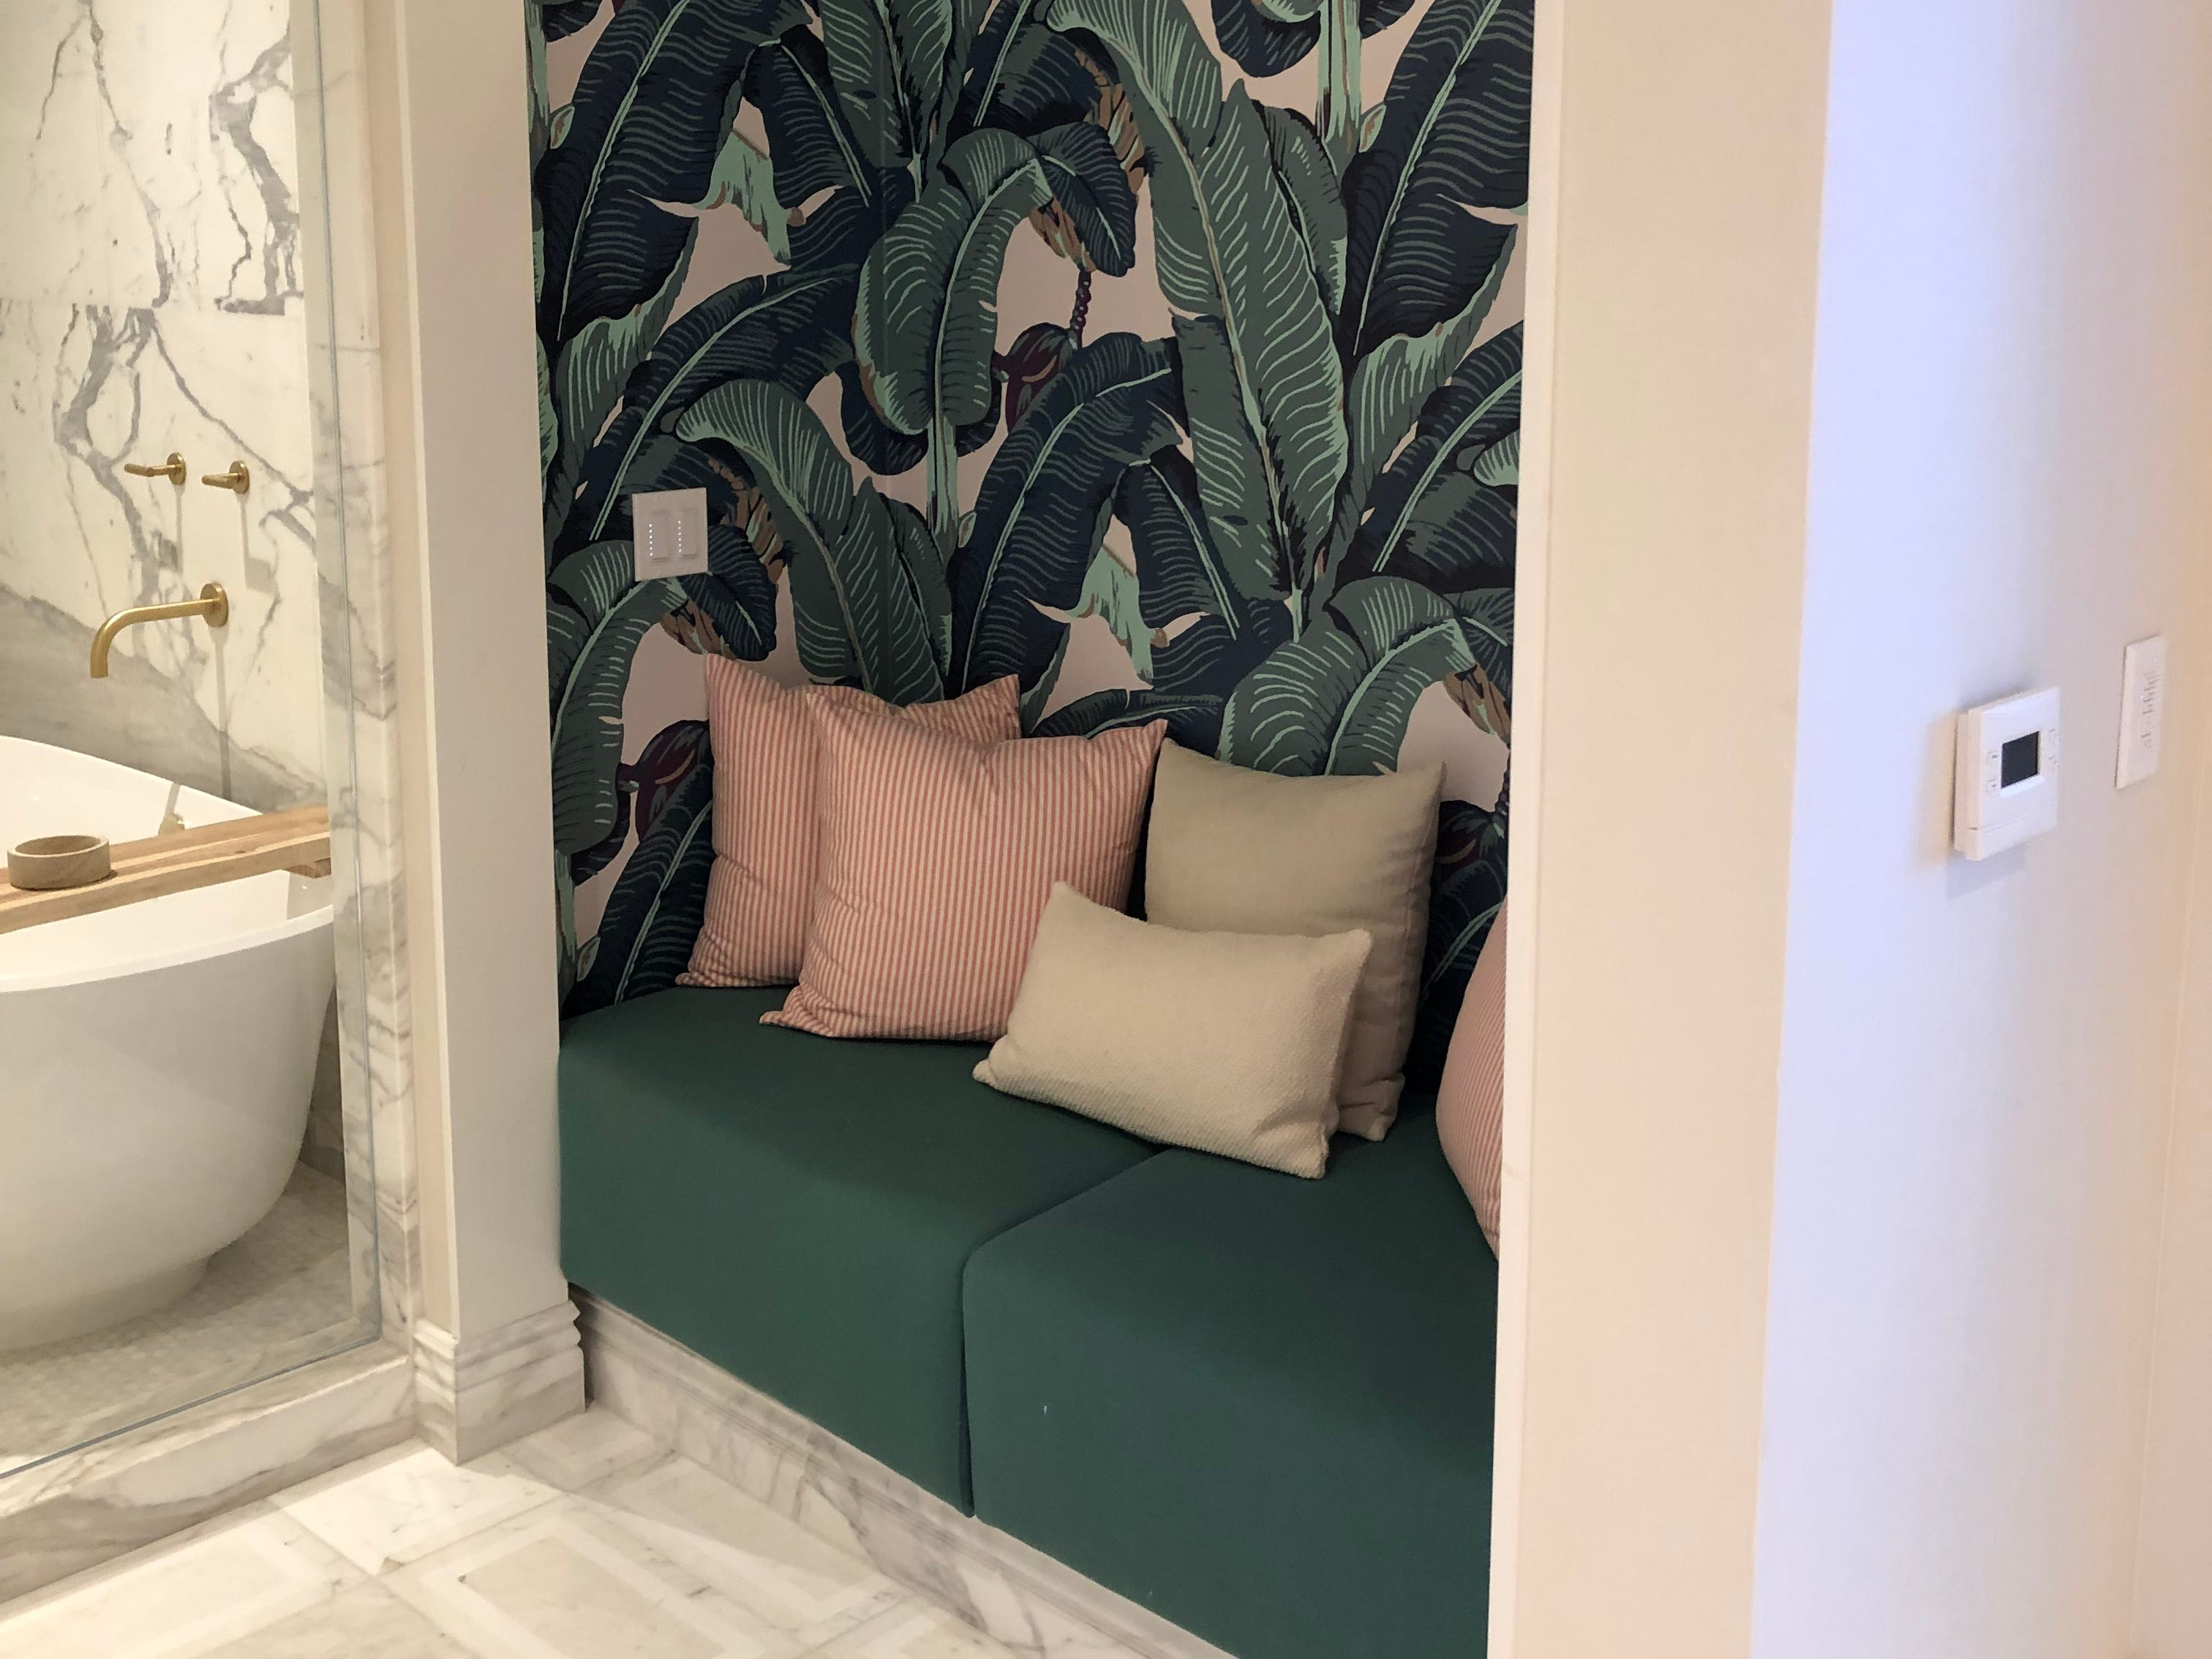 An Instagram-worthy nook in the suite designed by Revolve in the Las Vegas Palms Casino Resort.